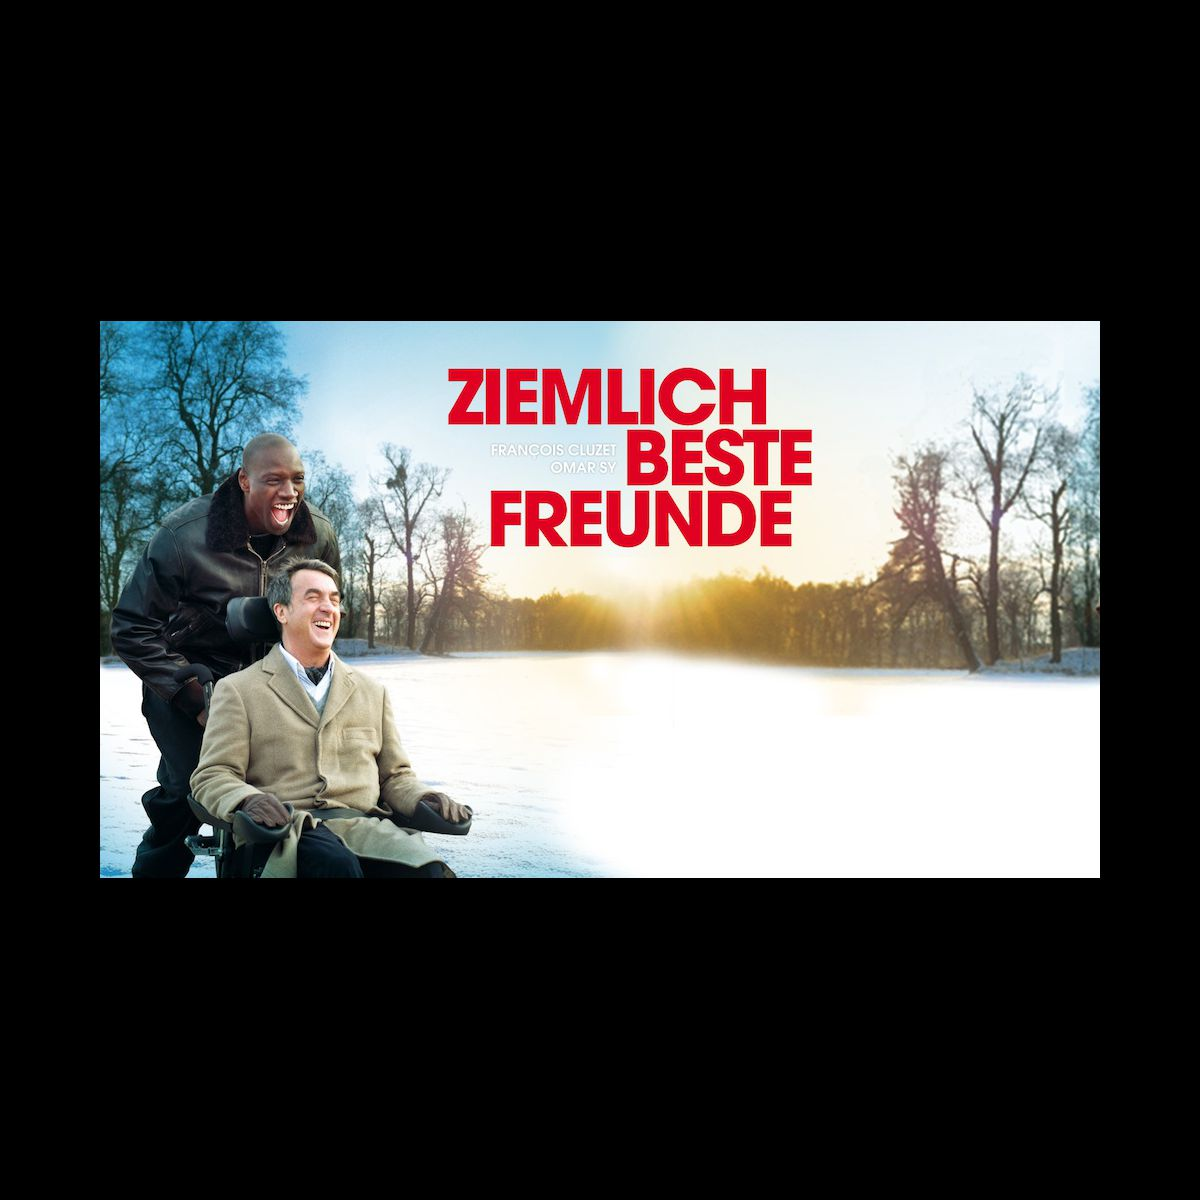 Intouchables passe en t te du box office allemand - Office allemand d echanges universitaires ...